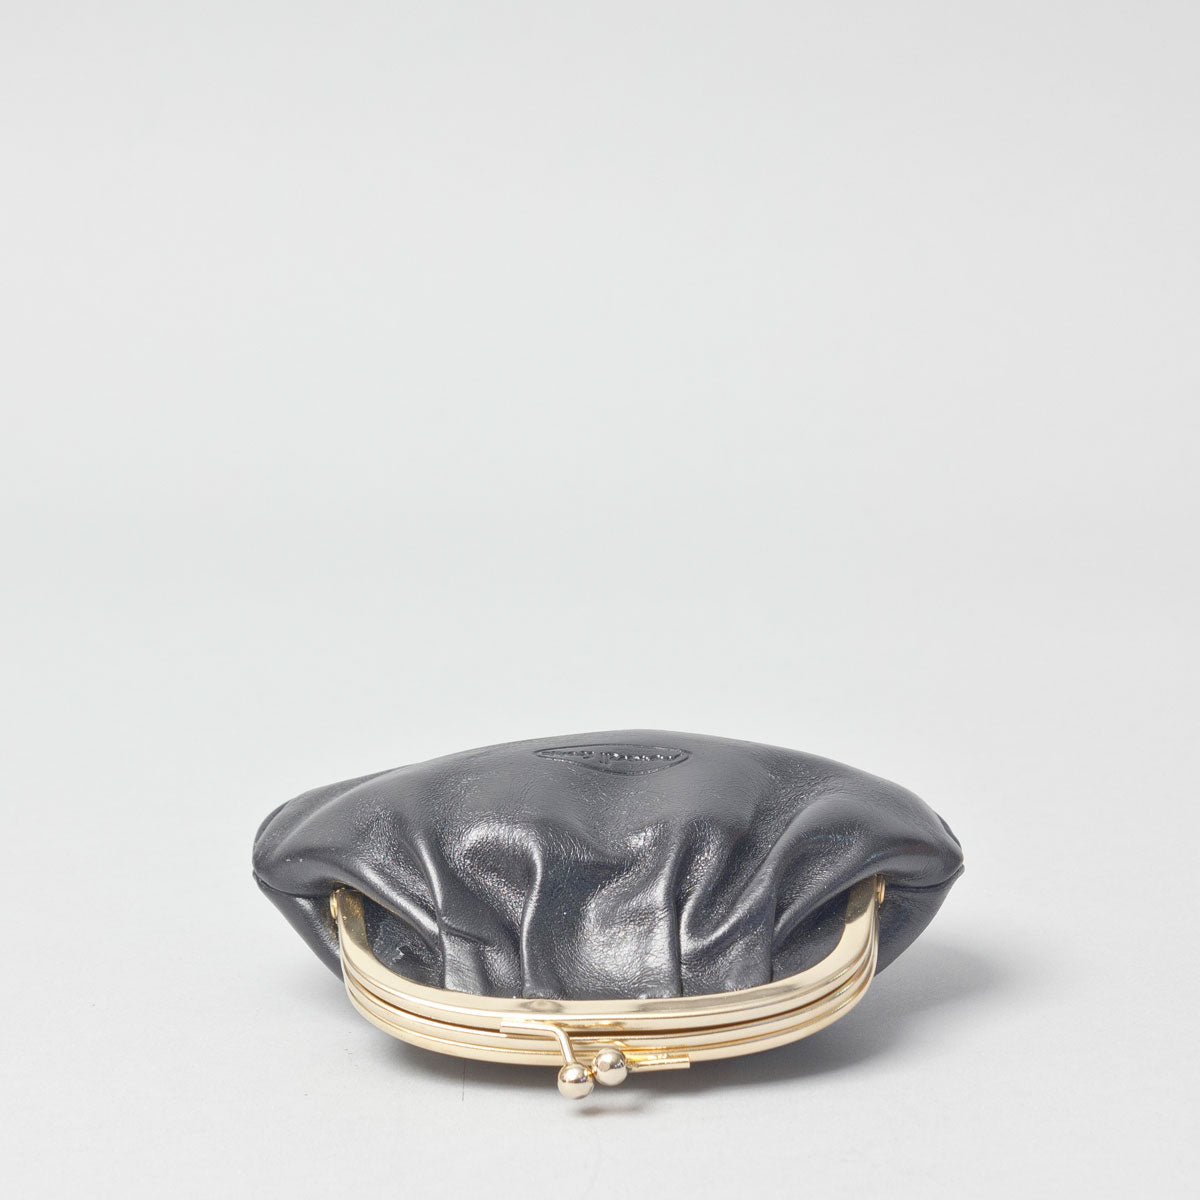 Image 2 of the 'Sabina' Black Veg-Tanned Leather Purse